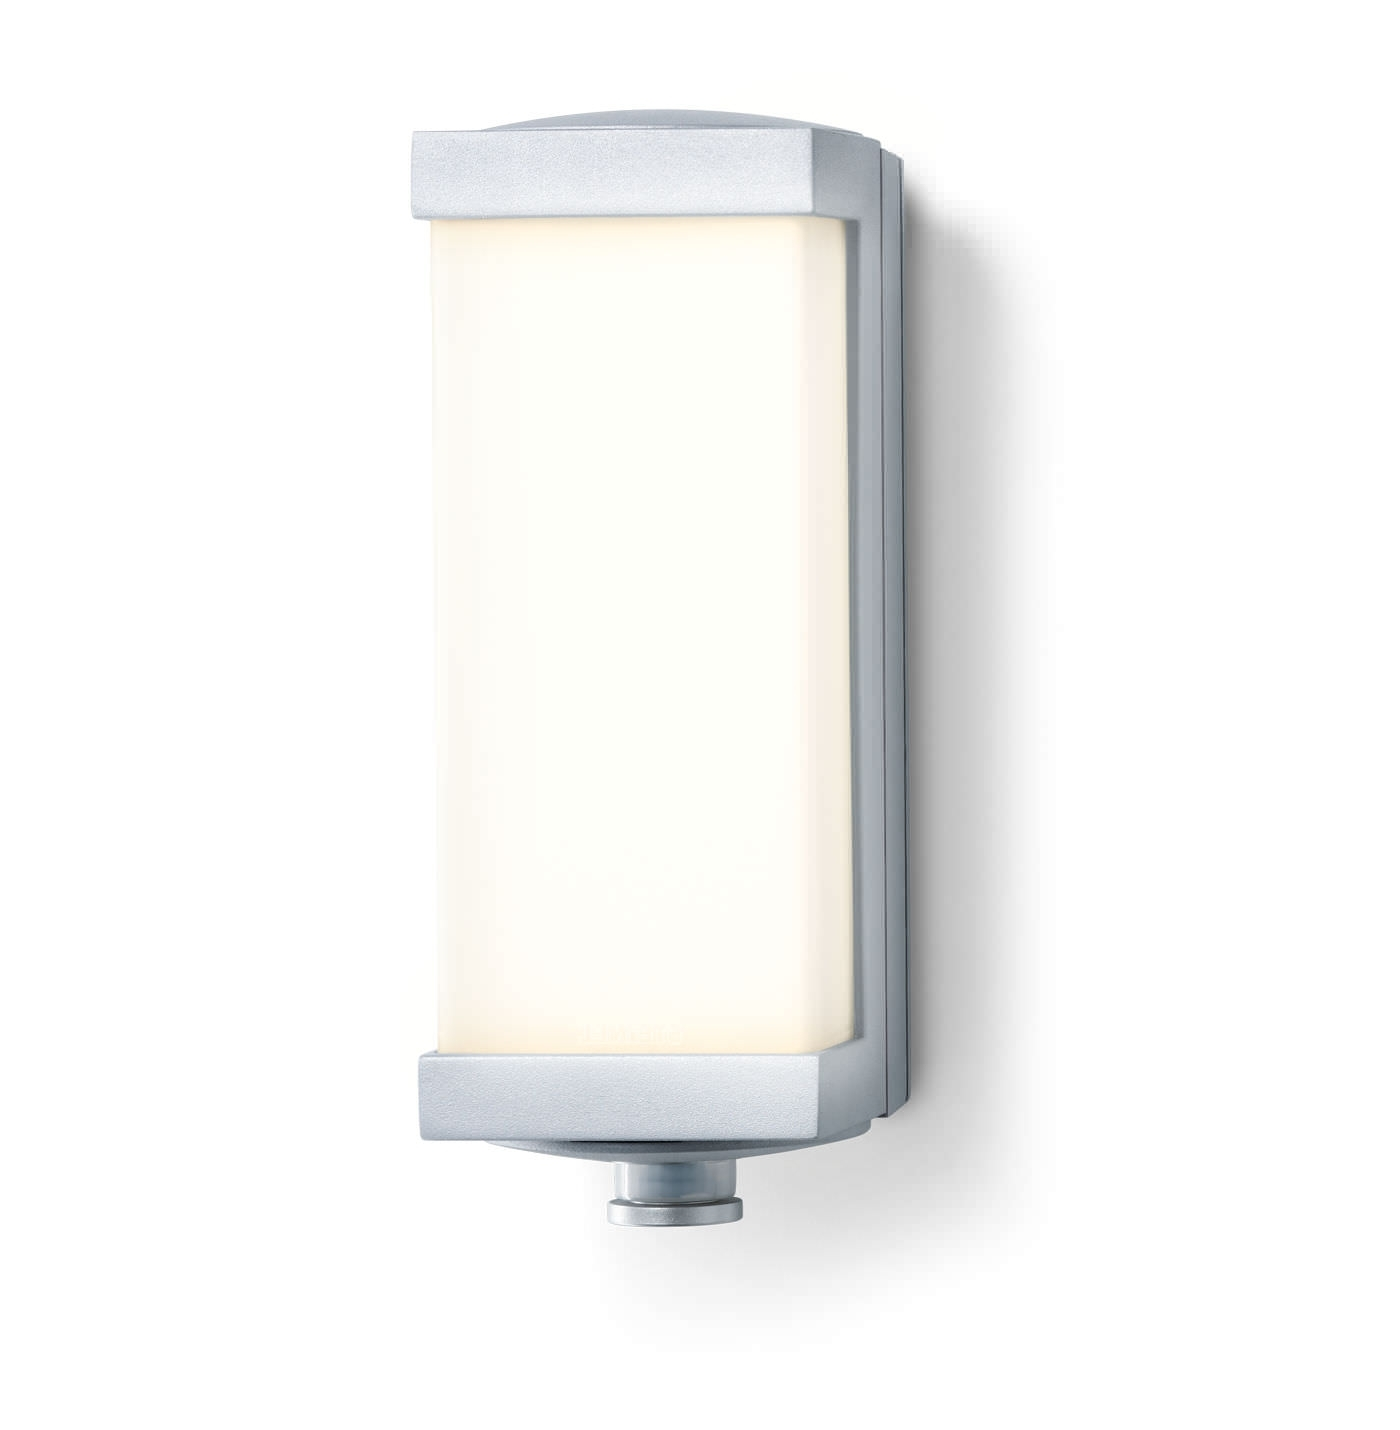 Popular Led Outdoor Wall Lights With Motion Sensor Throughout Contemporary Wall Light / Outdoor / Aluminum / Metal – L 666 Led (View 12 of 20)